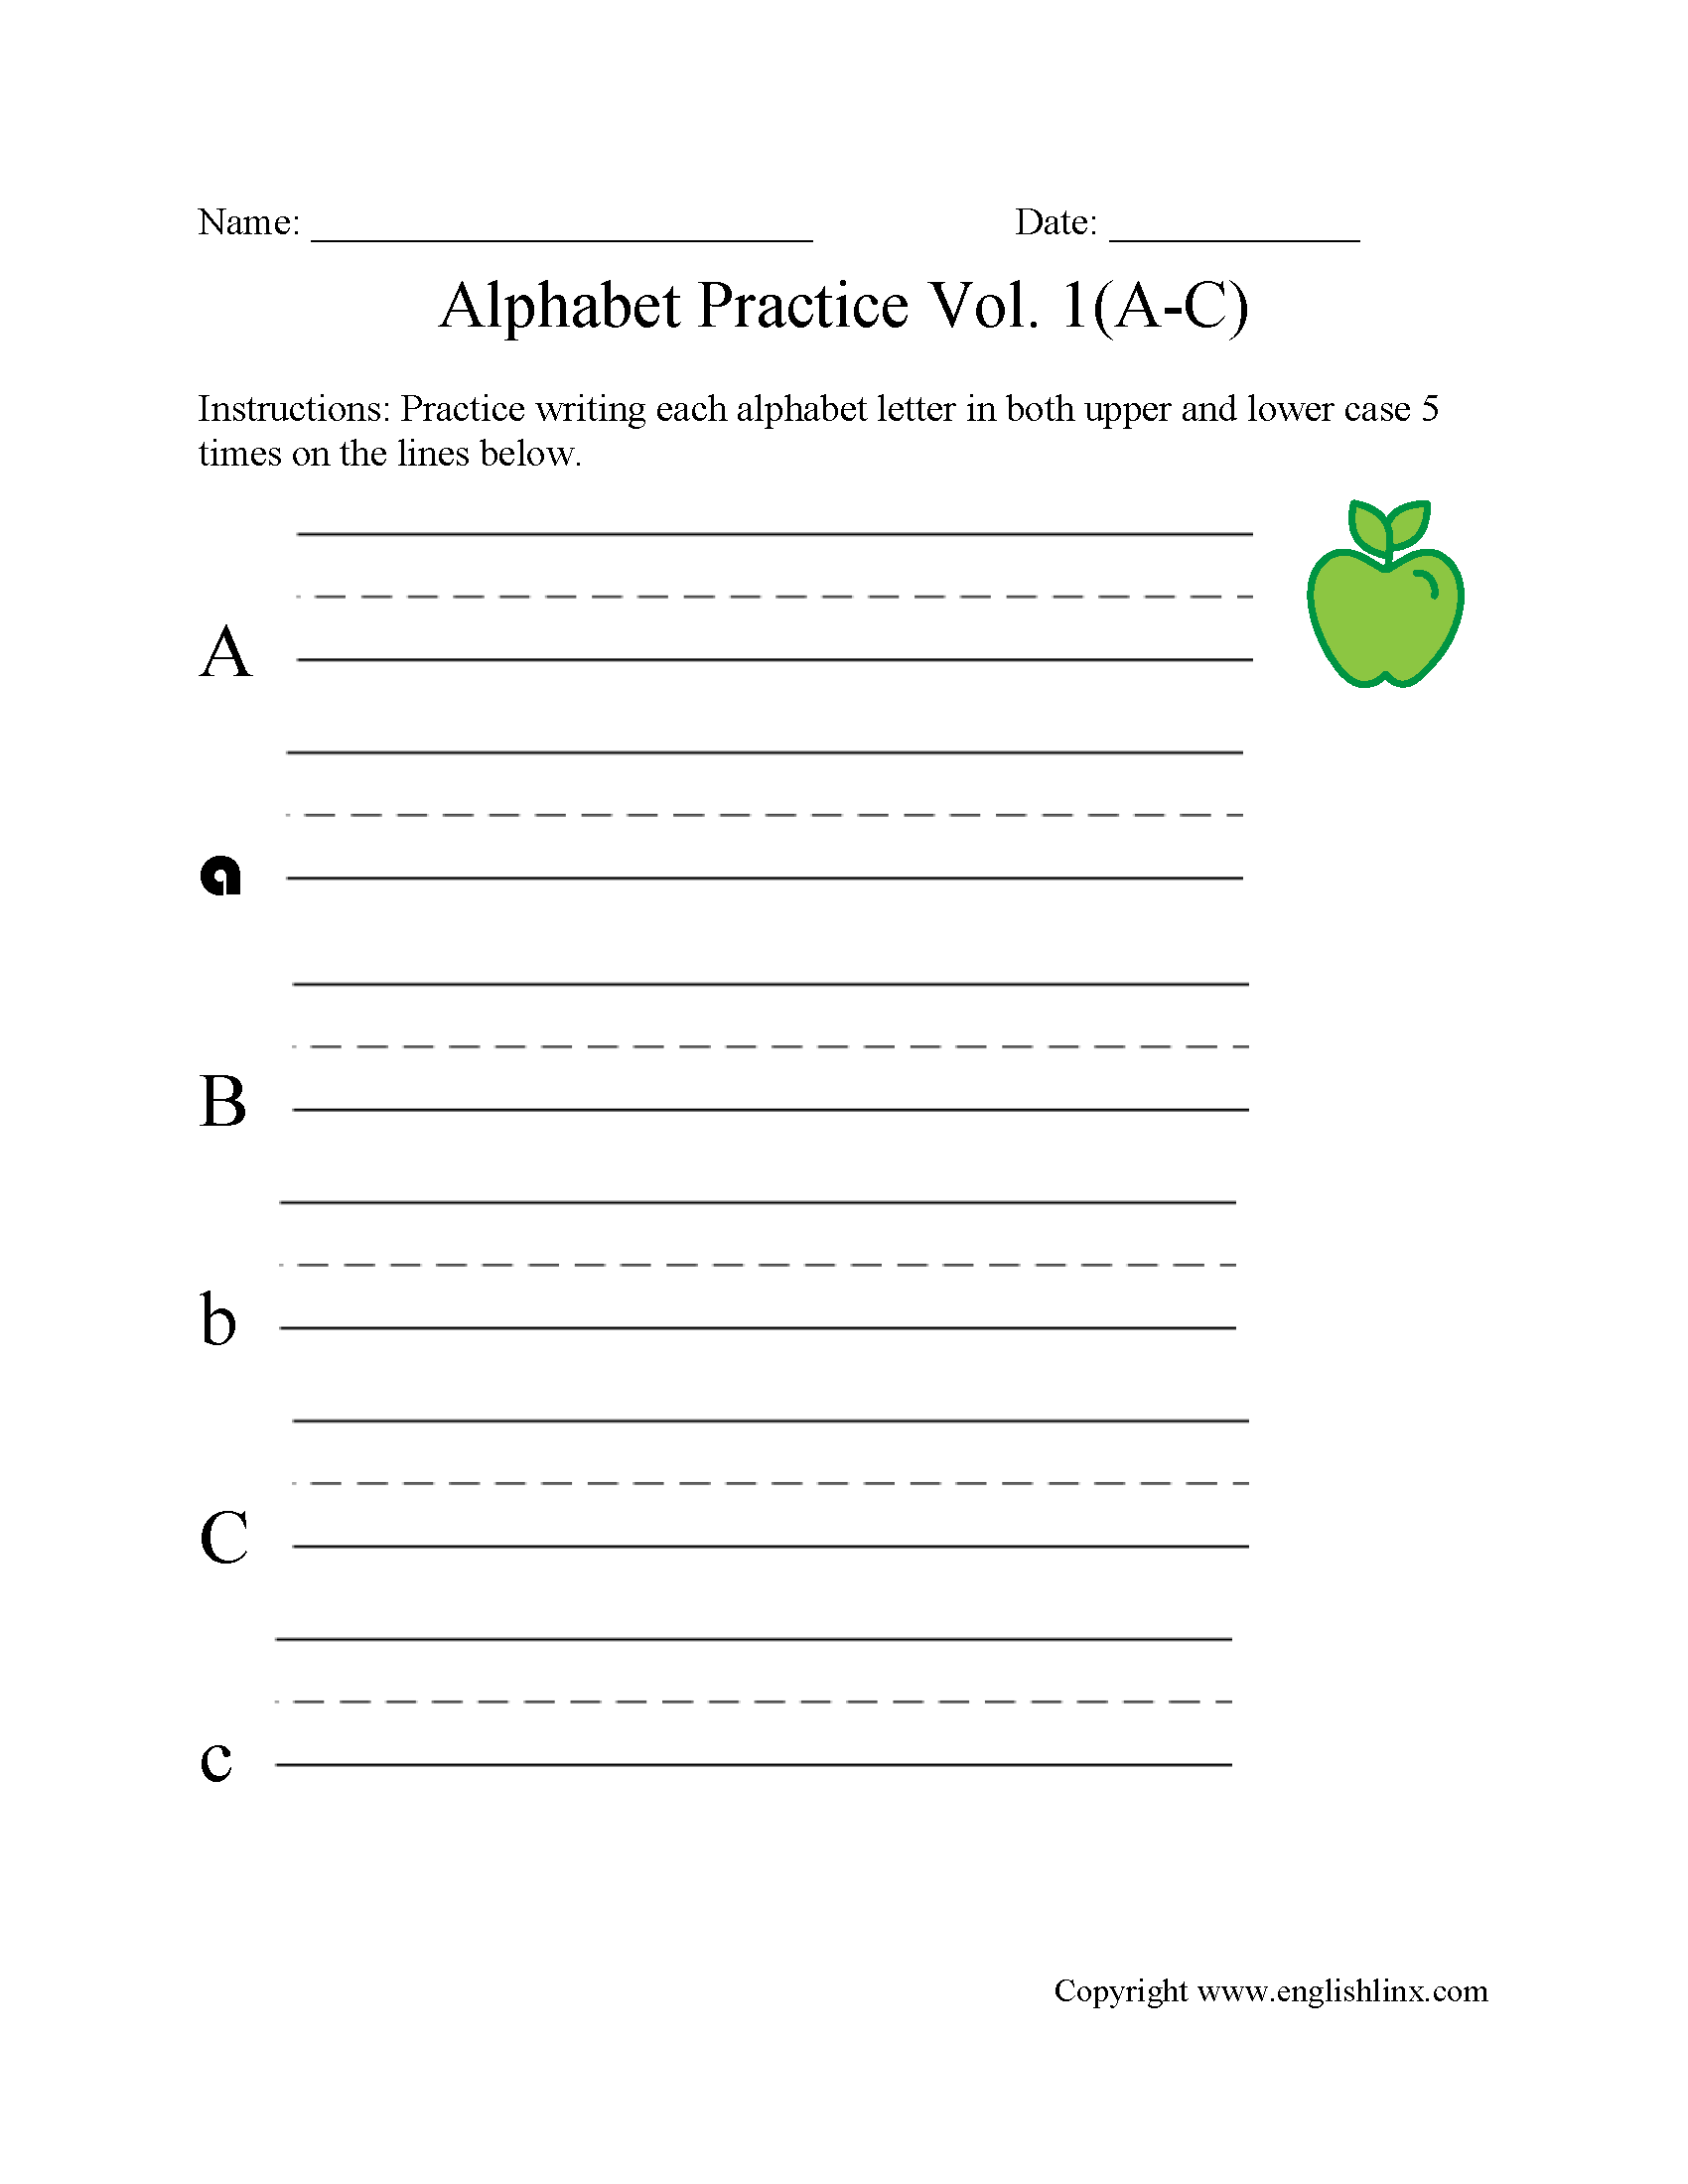 Alphabet Worksheets English Worksheets Images